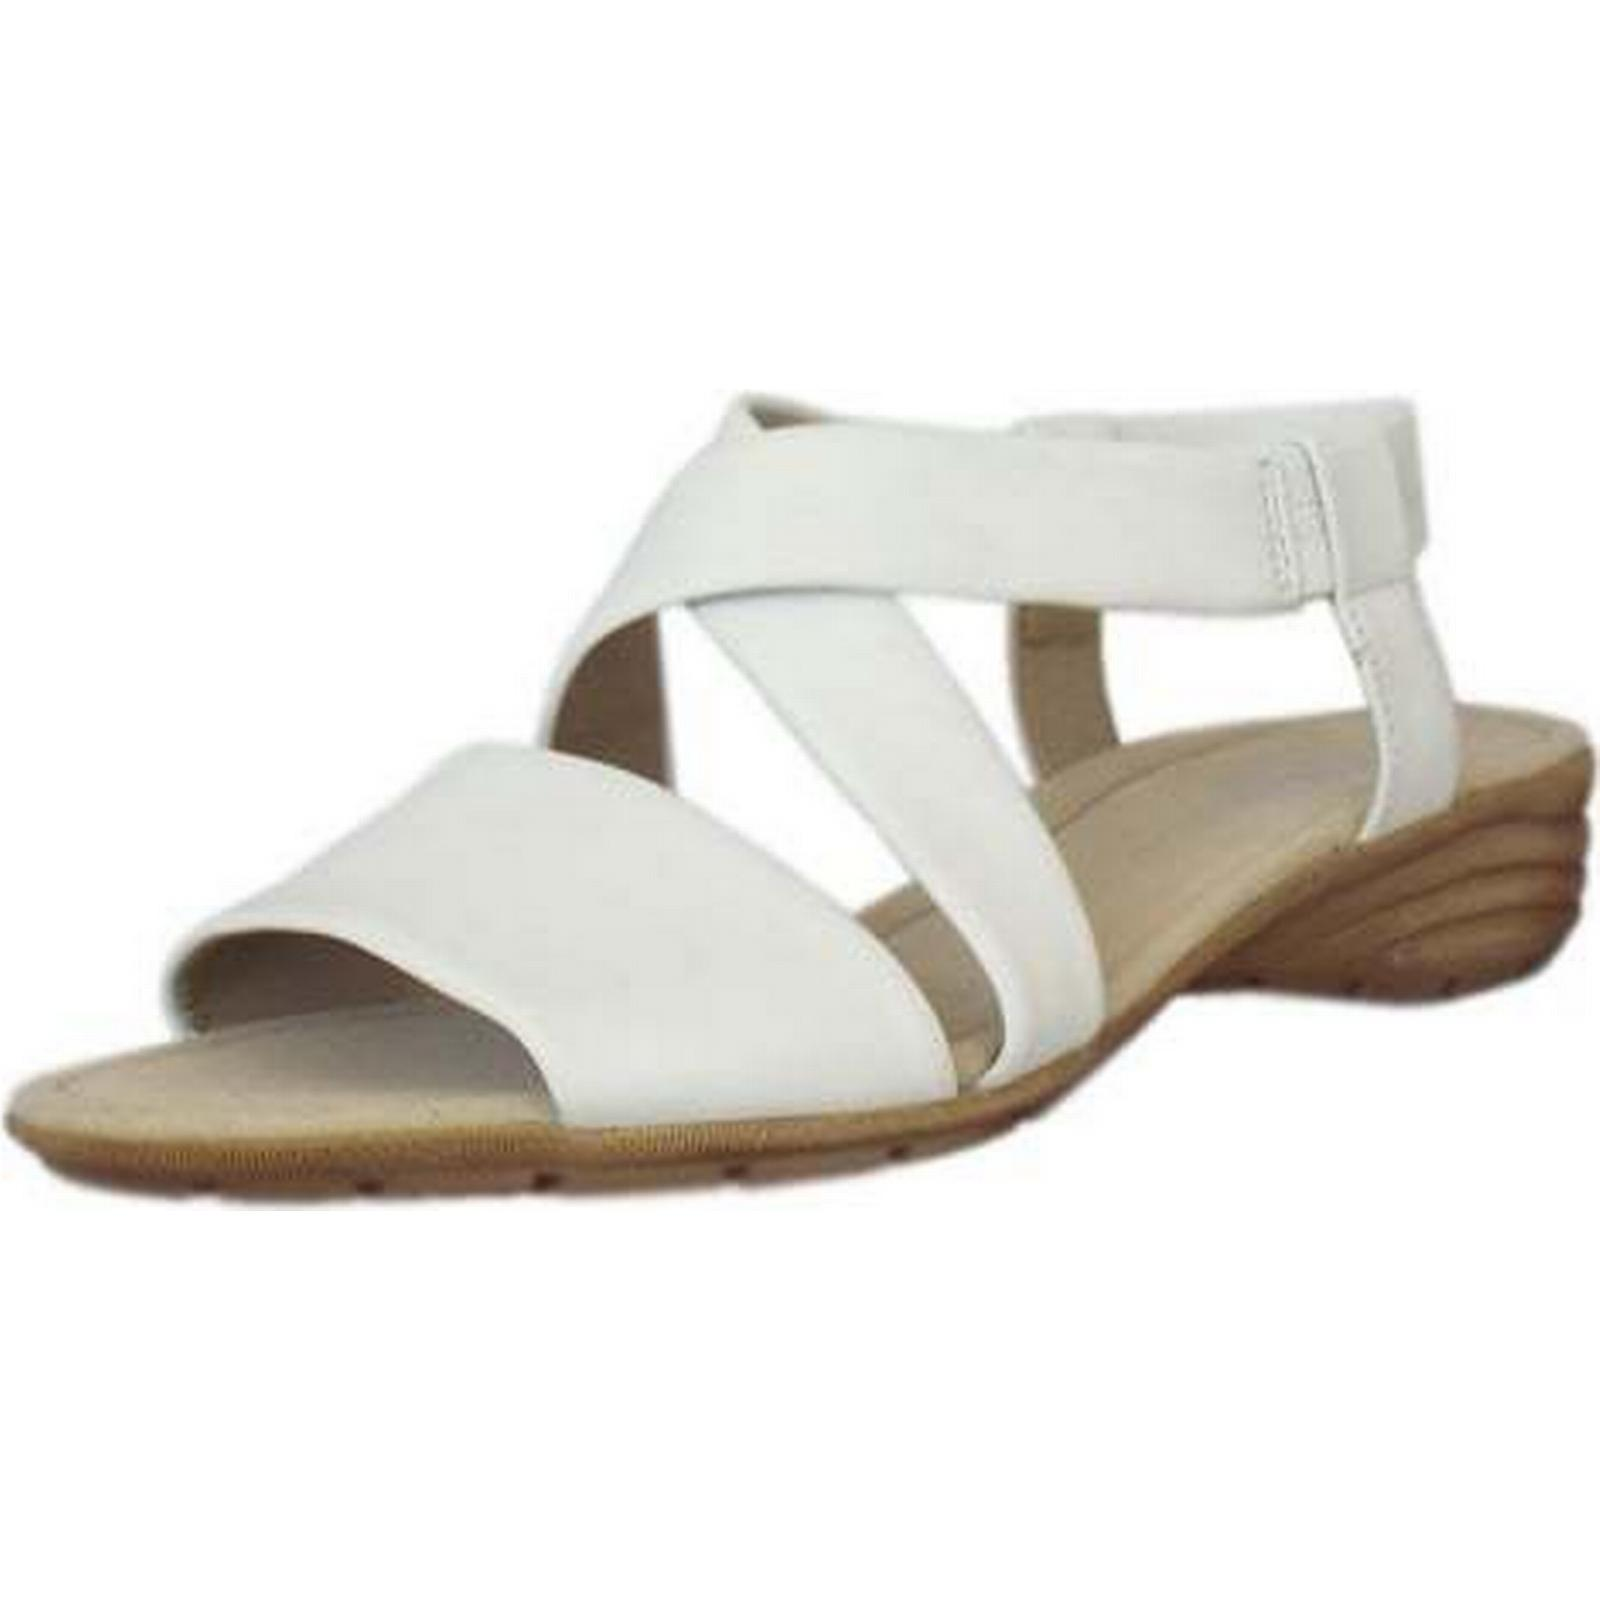 Gabor ENSIGN GABOR GABOR ENSIGN LADIES SUMMER SANDALS Size: 6, Colour: WHITE a7d191